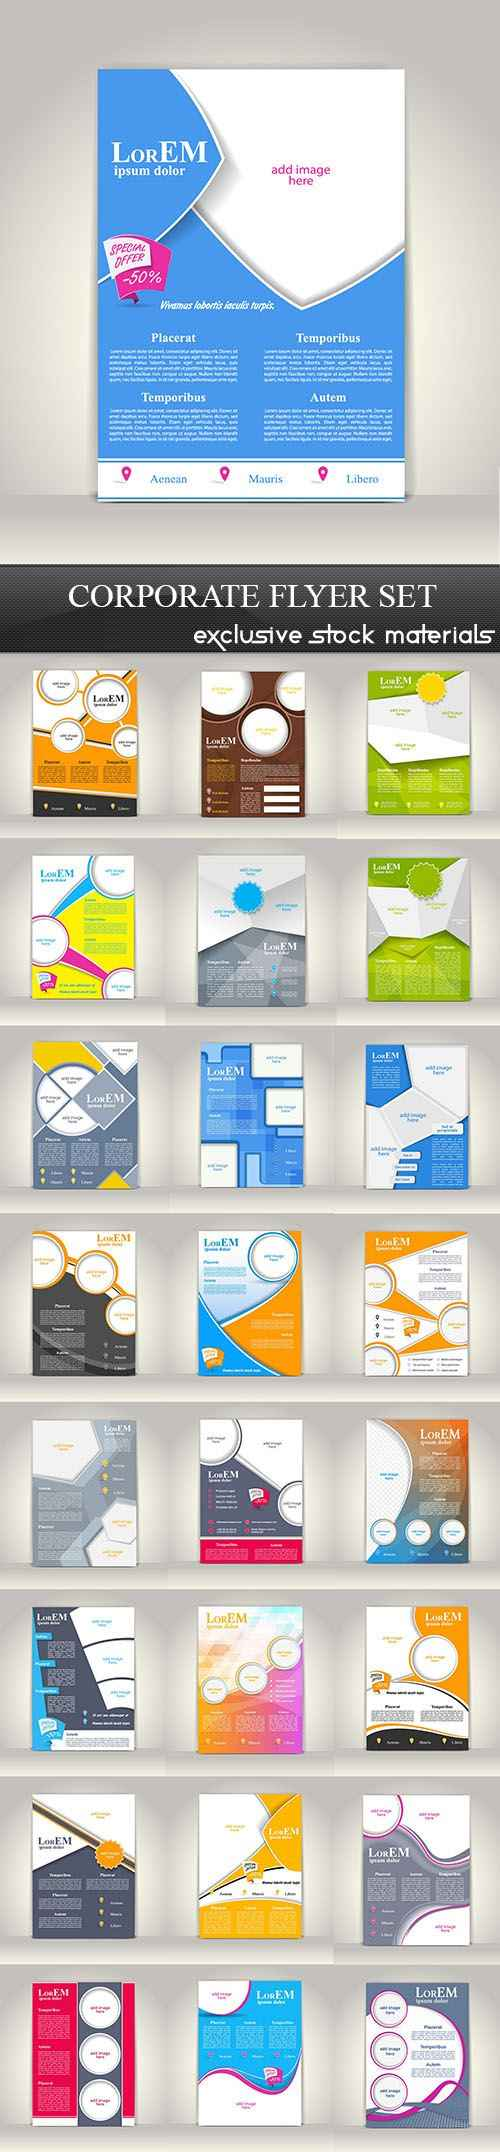 Corporate Flyer Set, 25xEPS